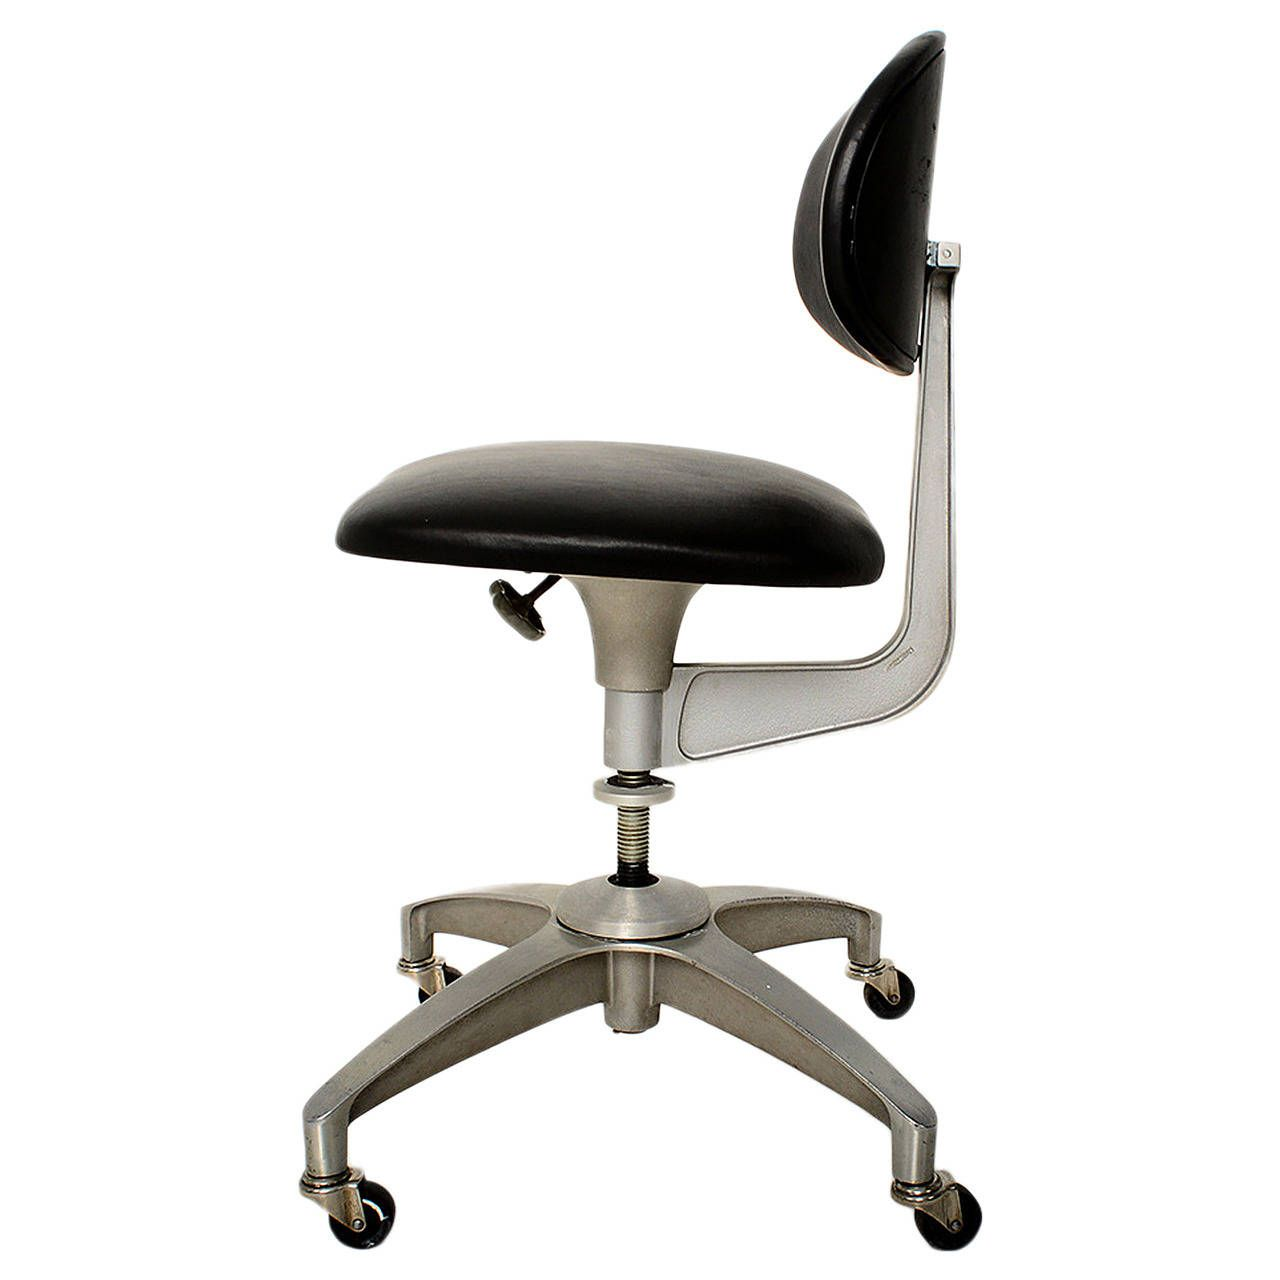 Aluminum Leather Industrial Office Chair From A Unique Collection Of Antique And Modern Office Chairs And Desk Industrial Office Chairs Chair Office Chair